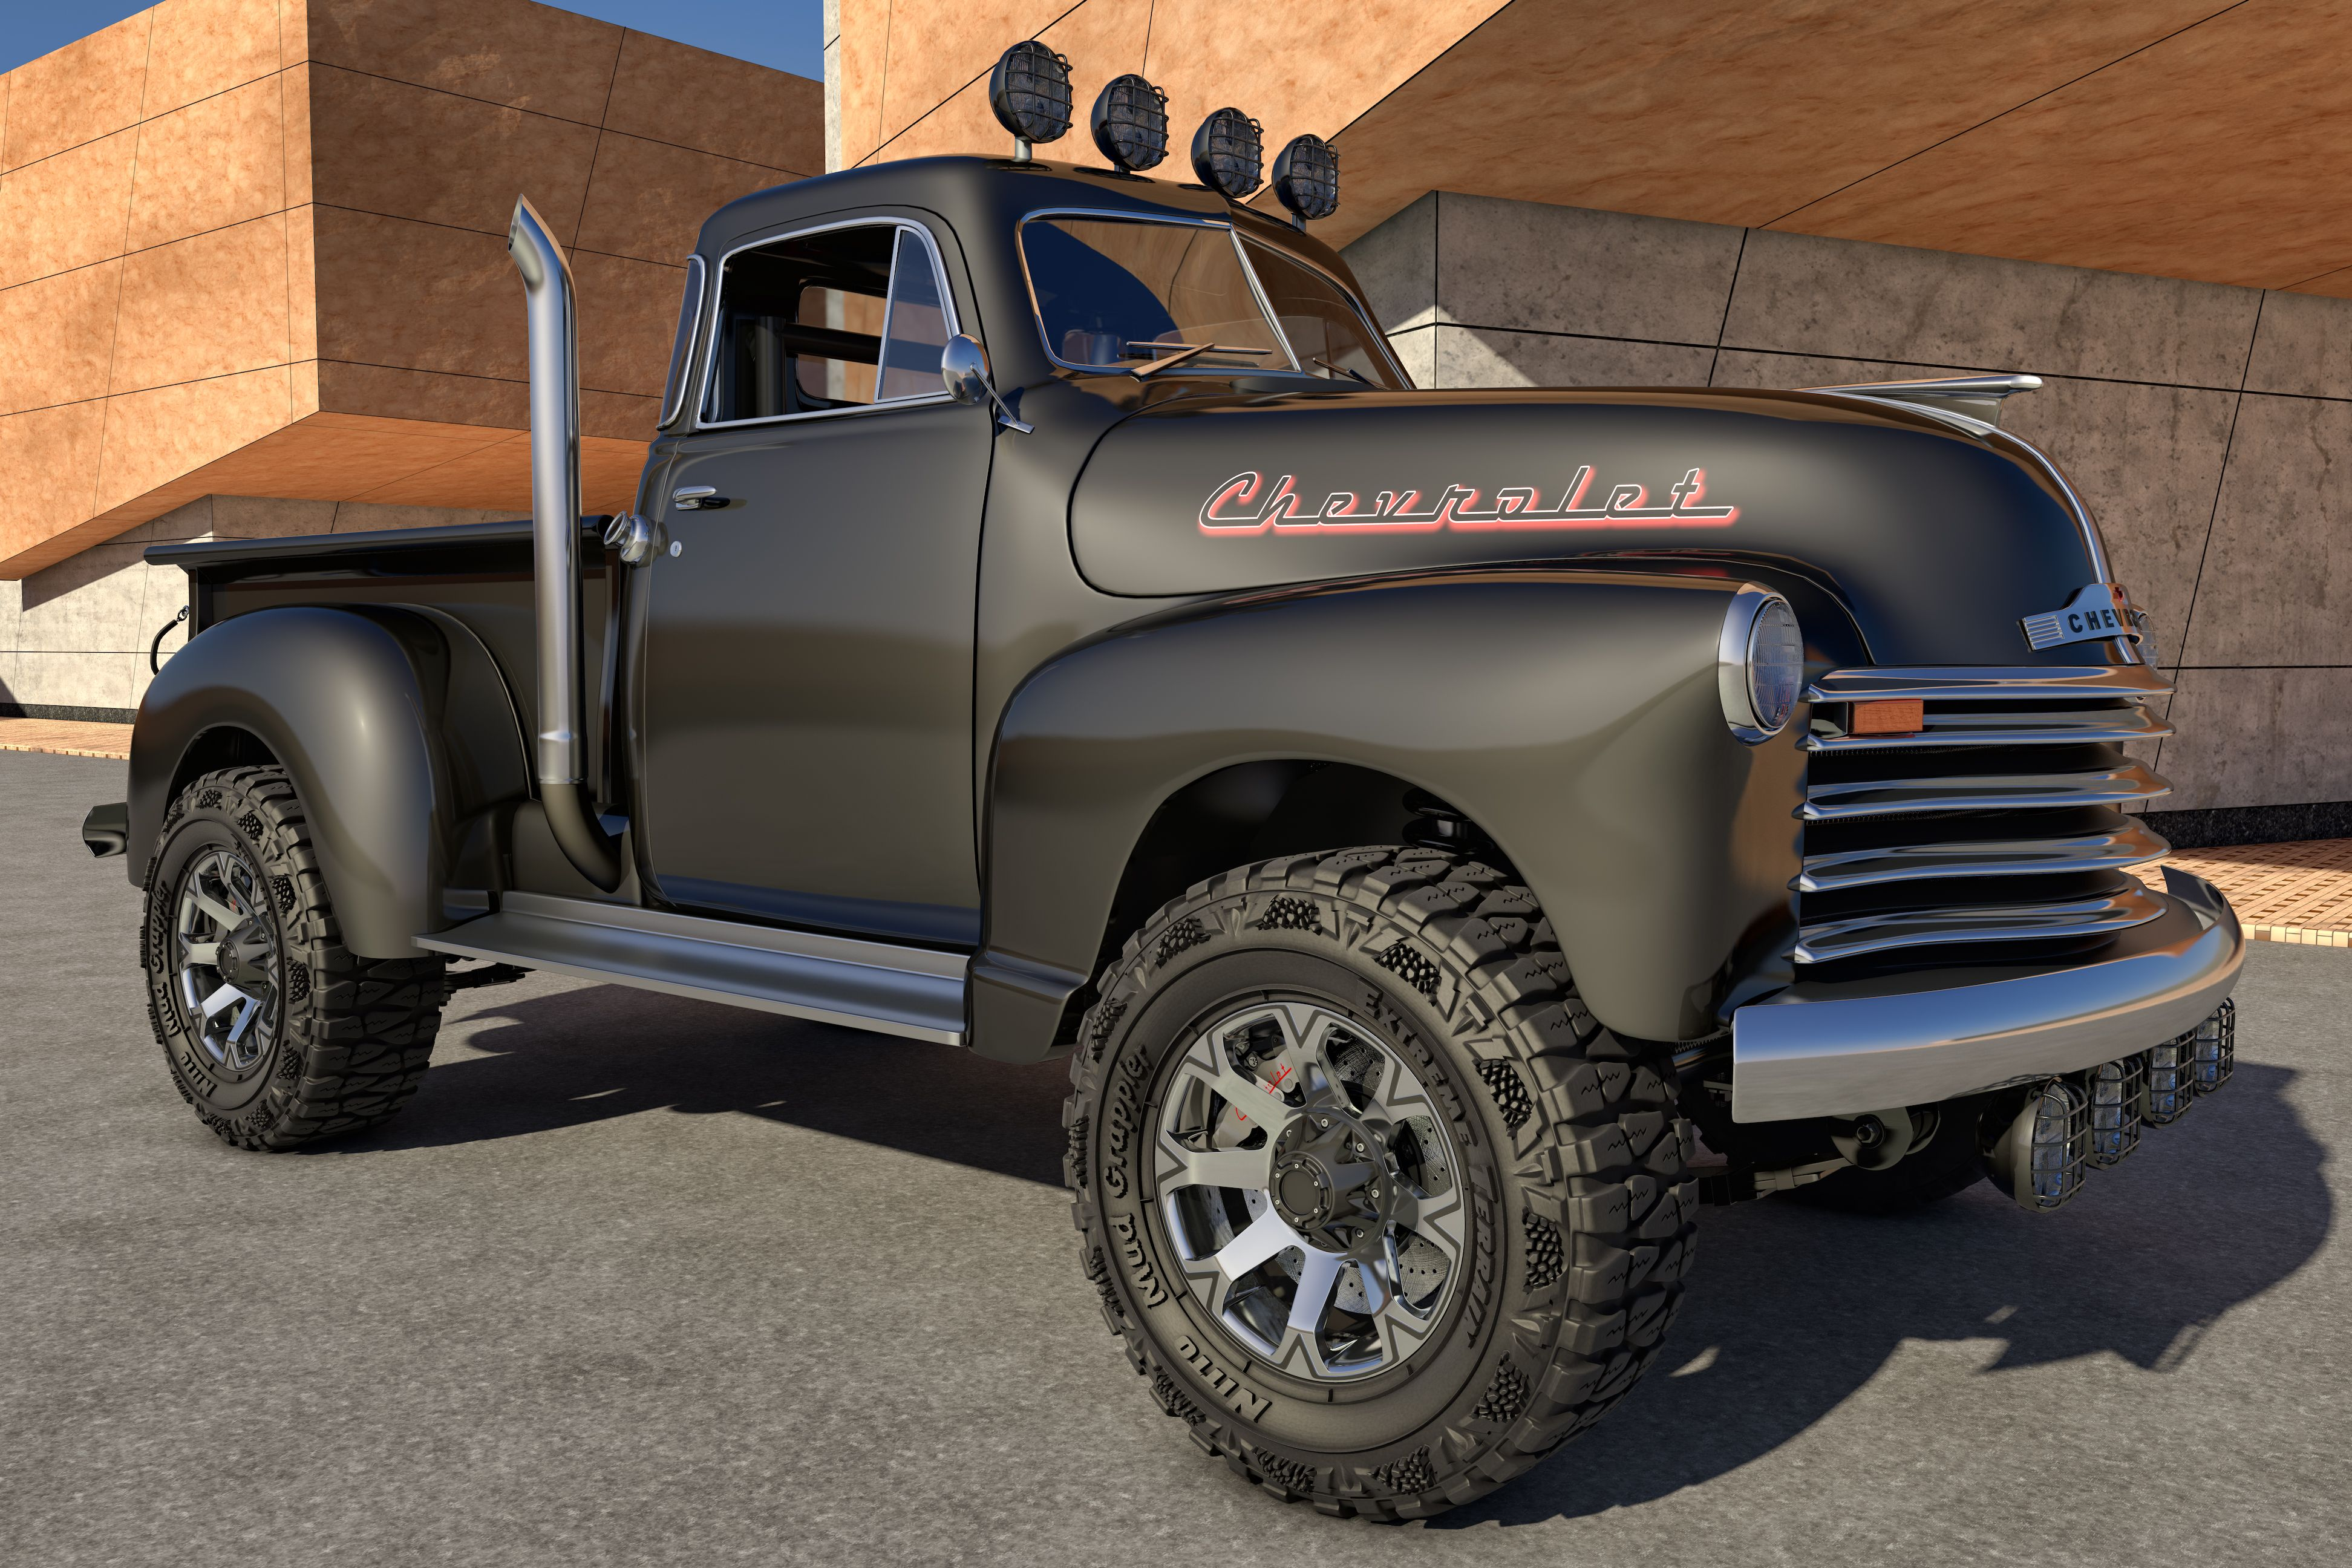 1951 chevrolet pickup 4x4 truck pickup vehicle. Black Bedroom Furniture Sets. Home Design Ideas